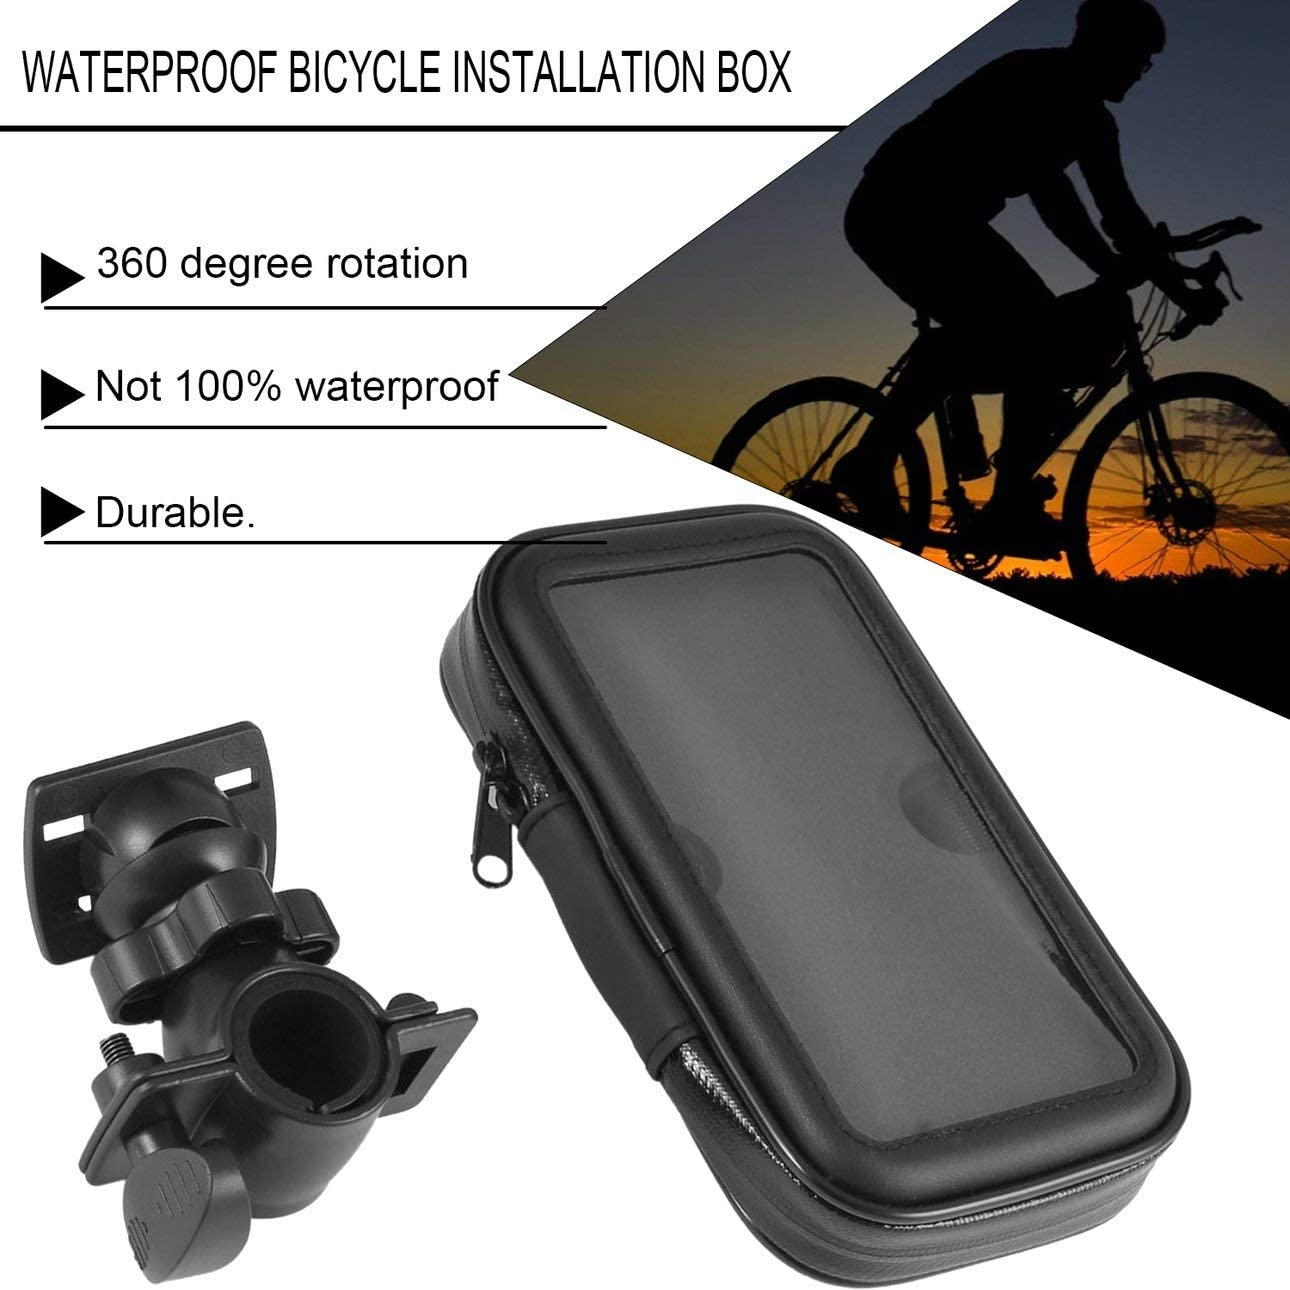 Liobaba Waterproof Bicycle Bag Bike Case Bicycle Mount Holder Case Handlebar Holder Bicycle Cover for Mobile Phone Bike Accessories